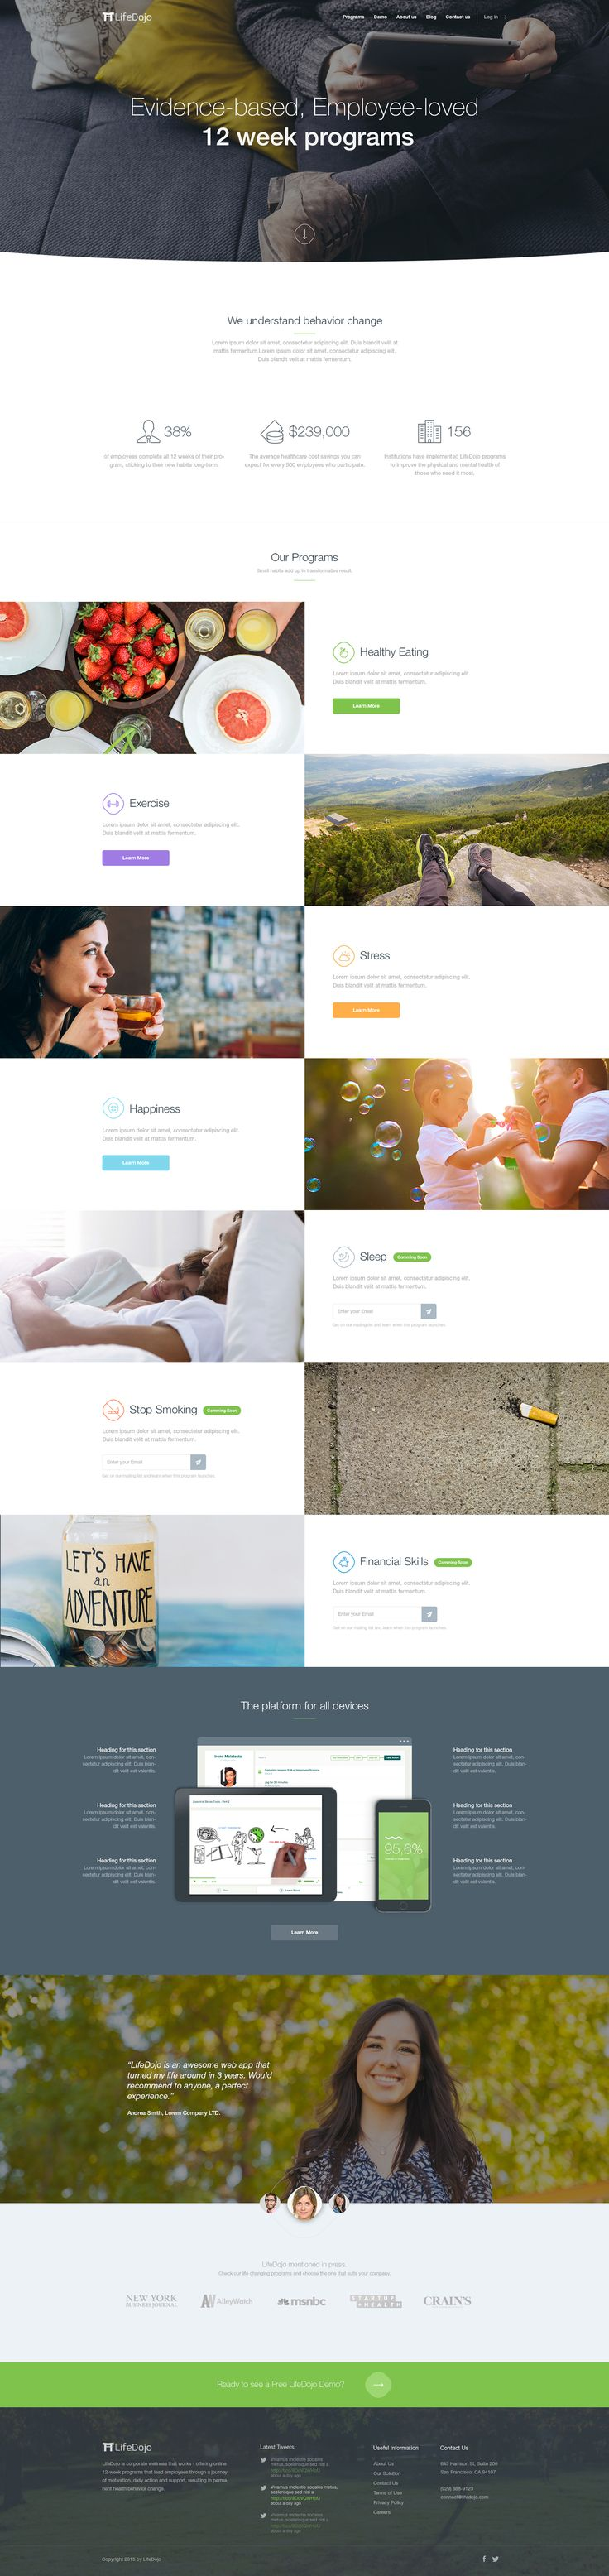 41 best Home Page images on Pinterest | Blog, Brother and Colors